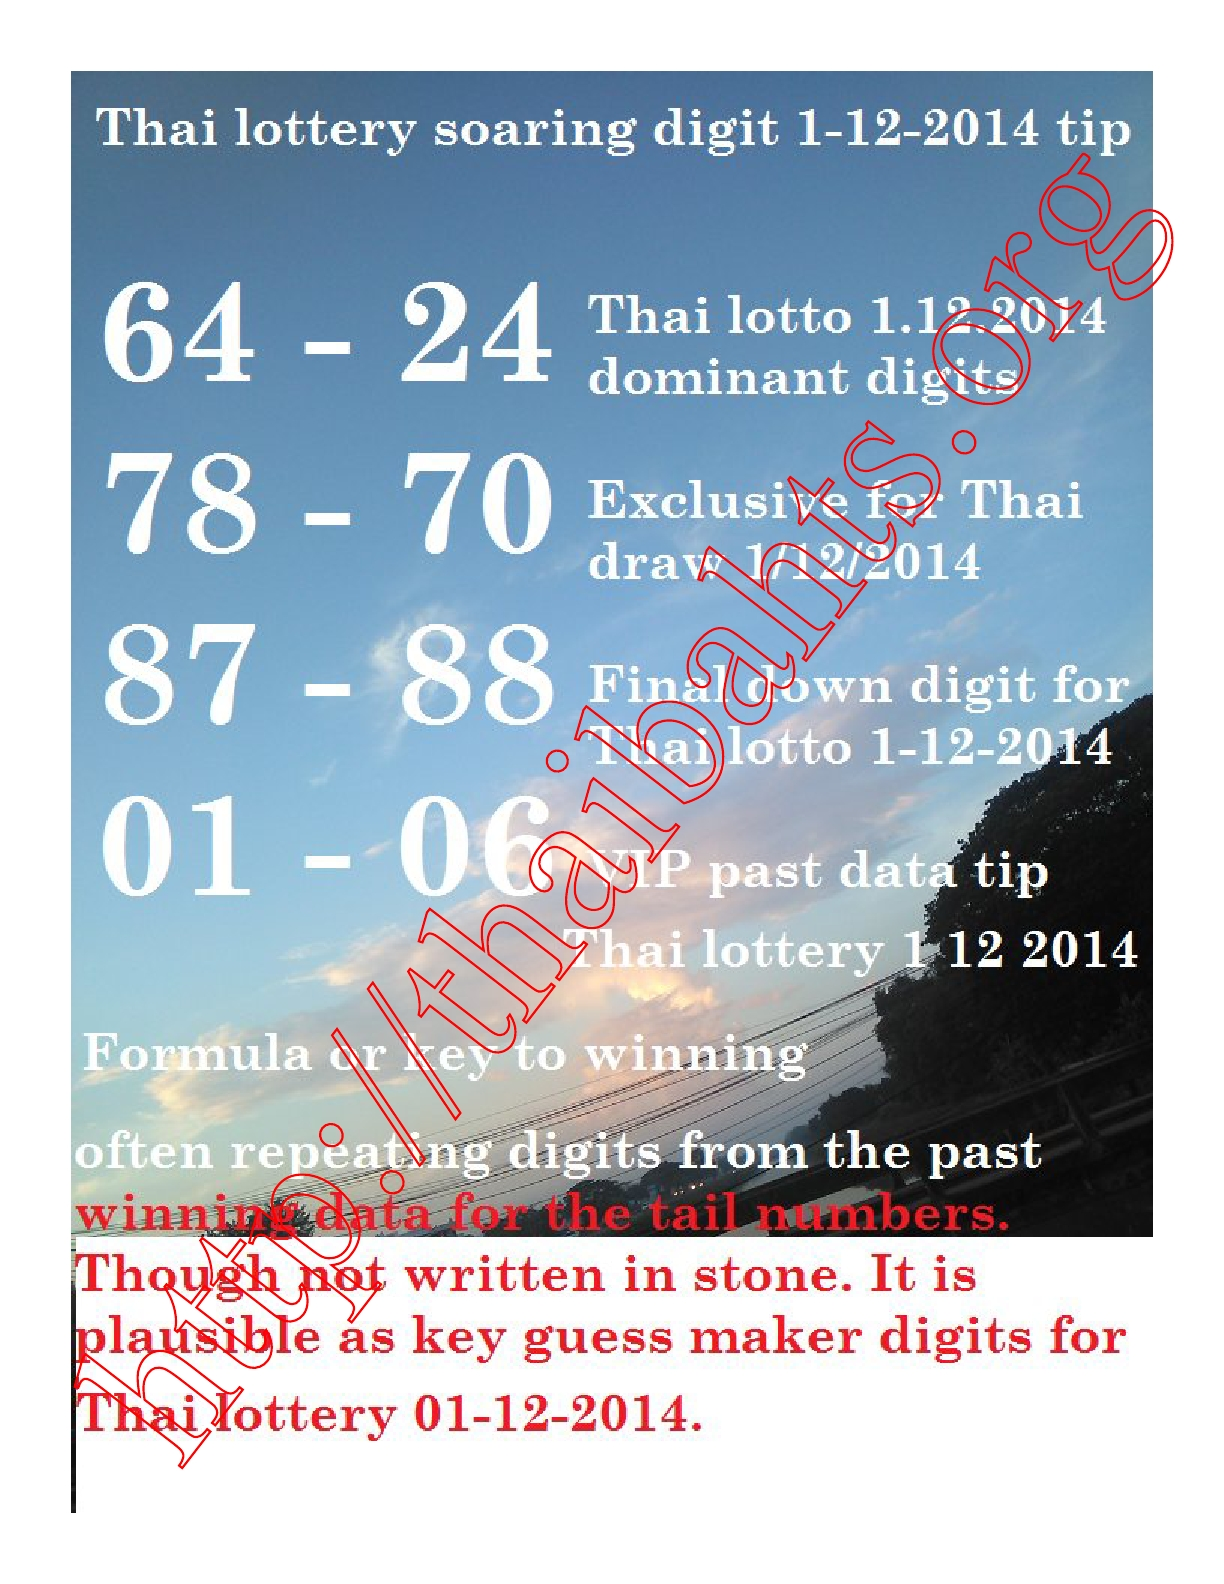 Thai lotto soaring digit tips 1-12-2014